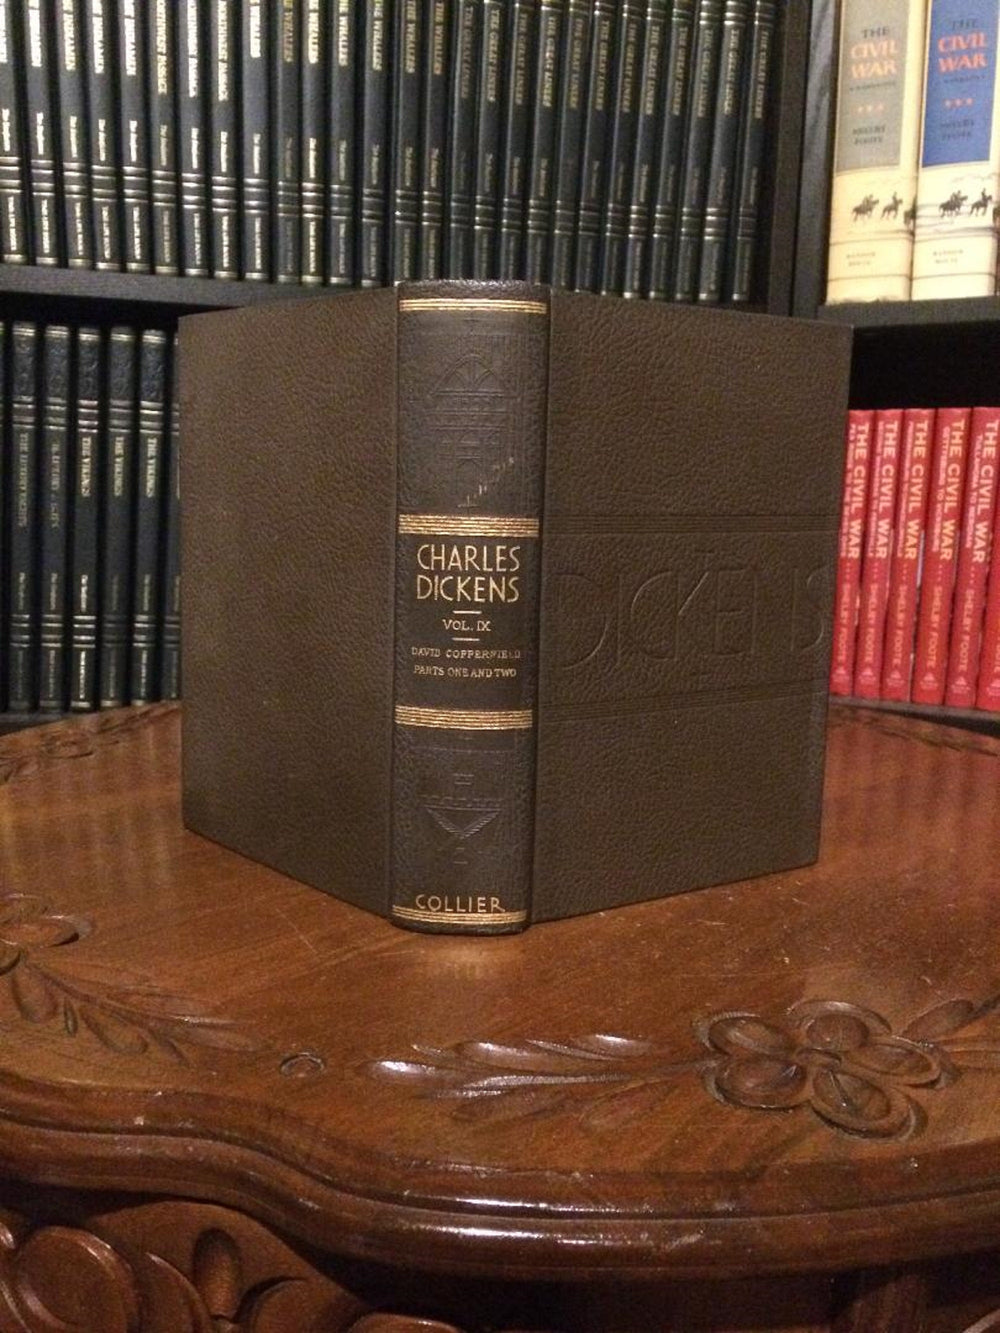 David Copperfield by Charles Dickens COLLIER (Hardcover)